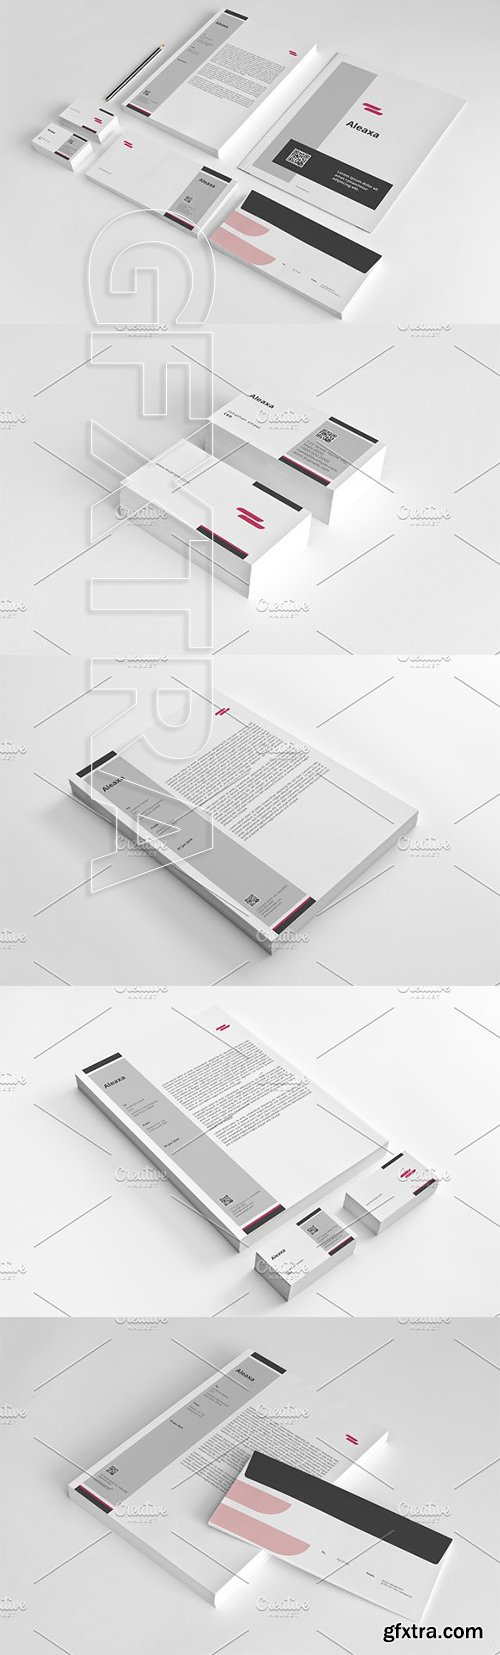 CreativeMarket - Corporate Identity Design Set - V09 3316779